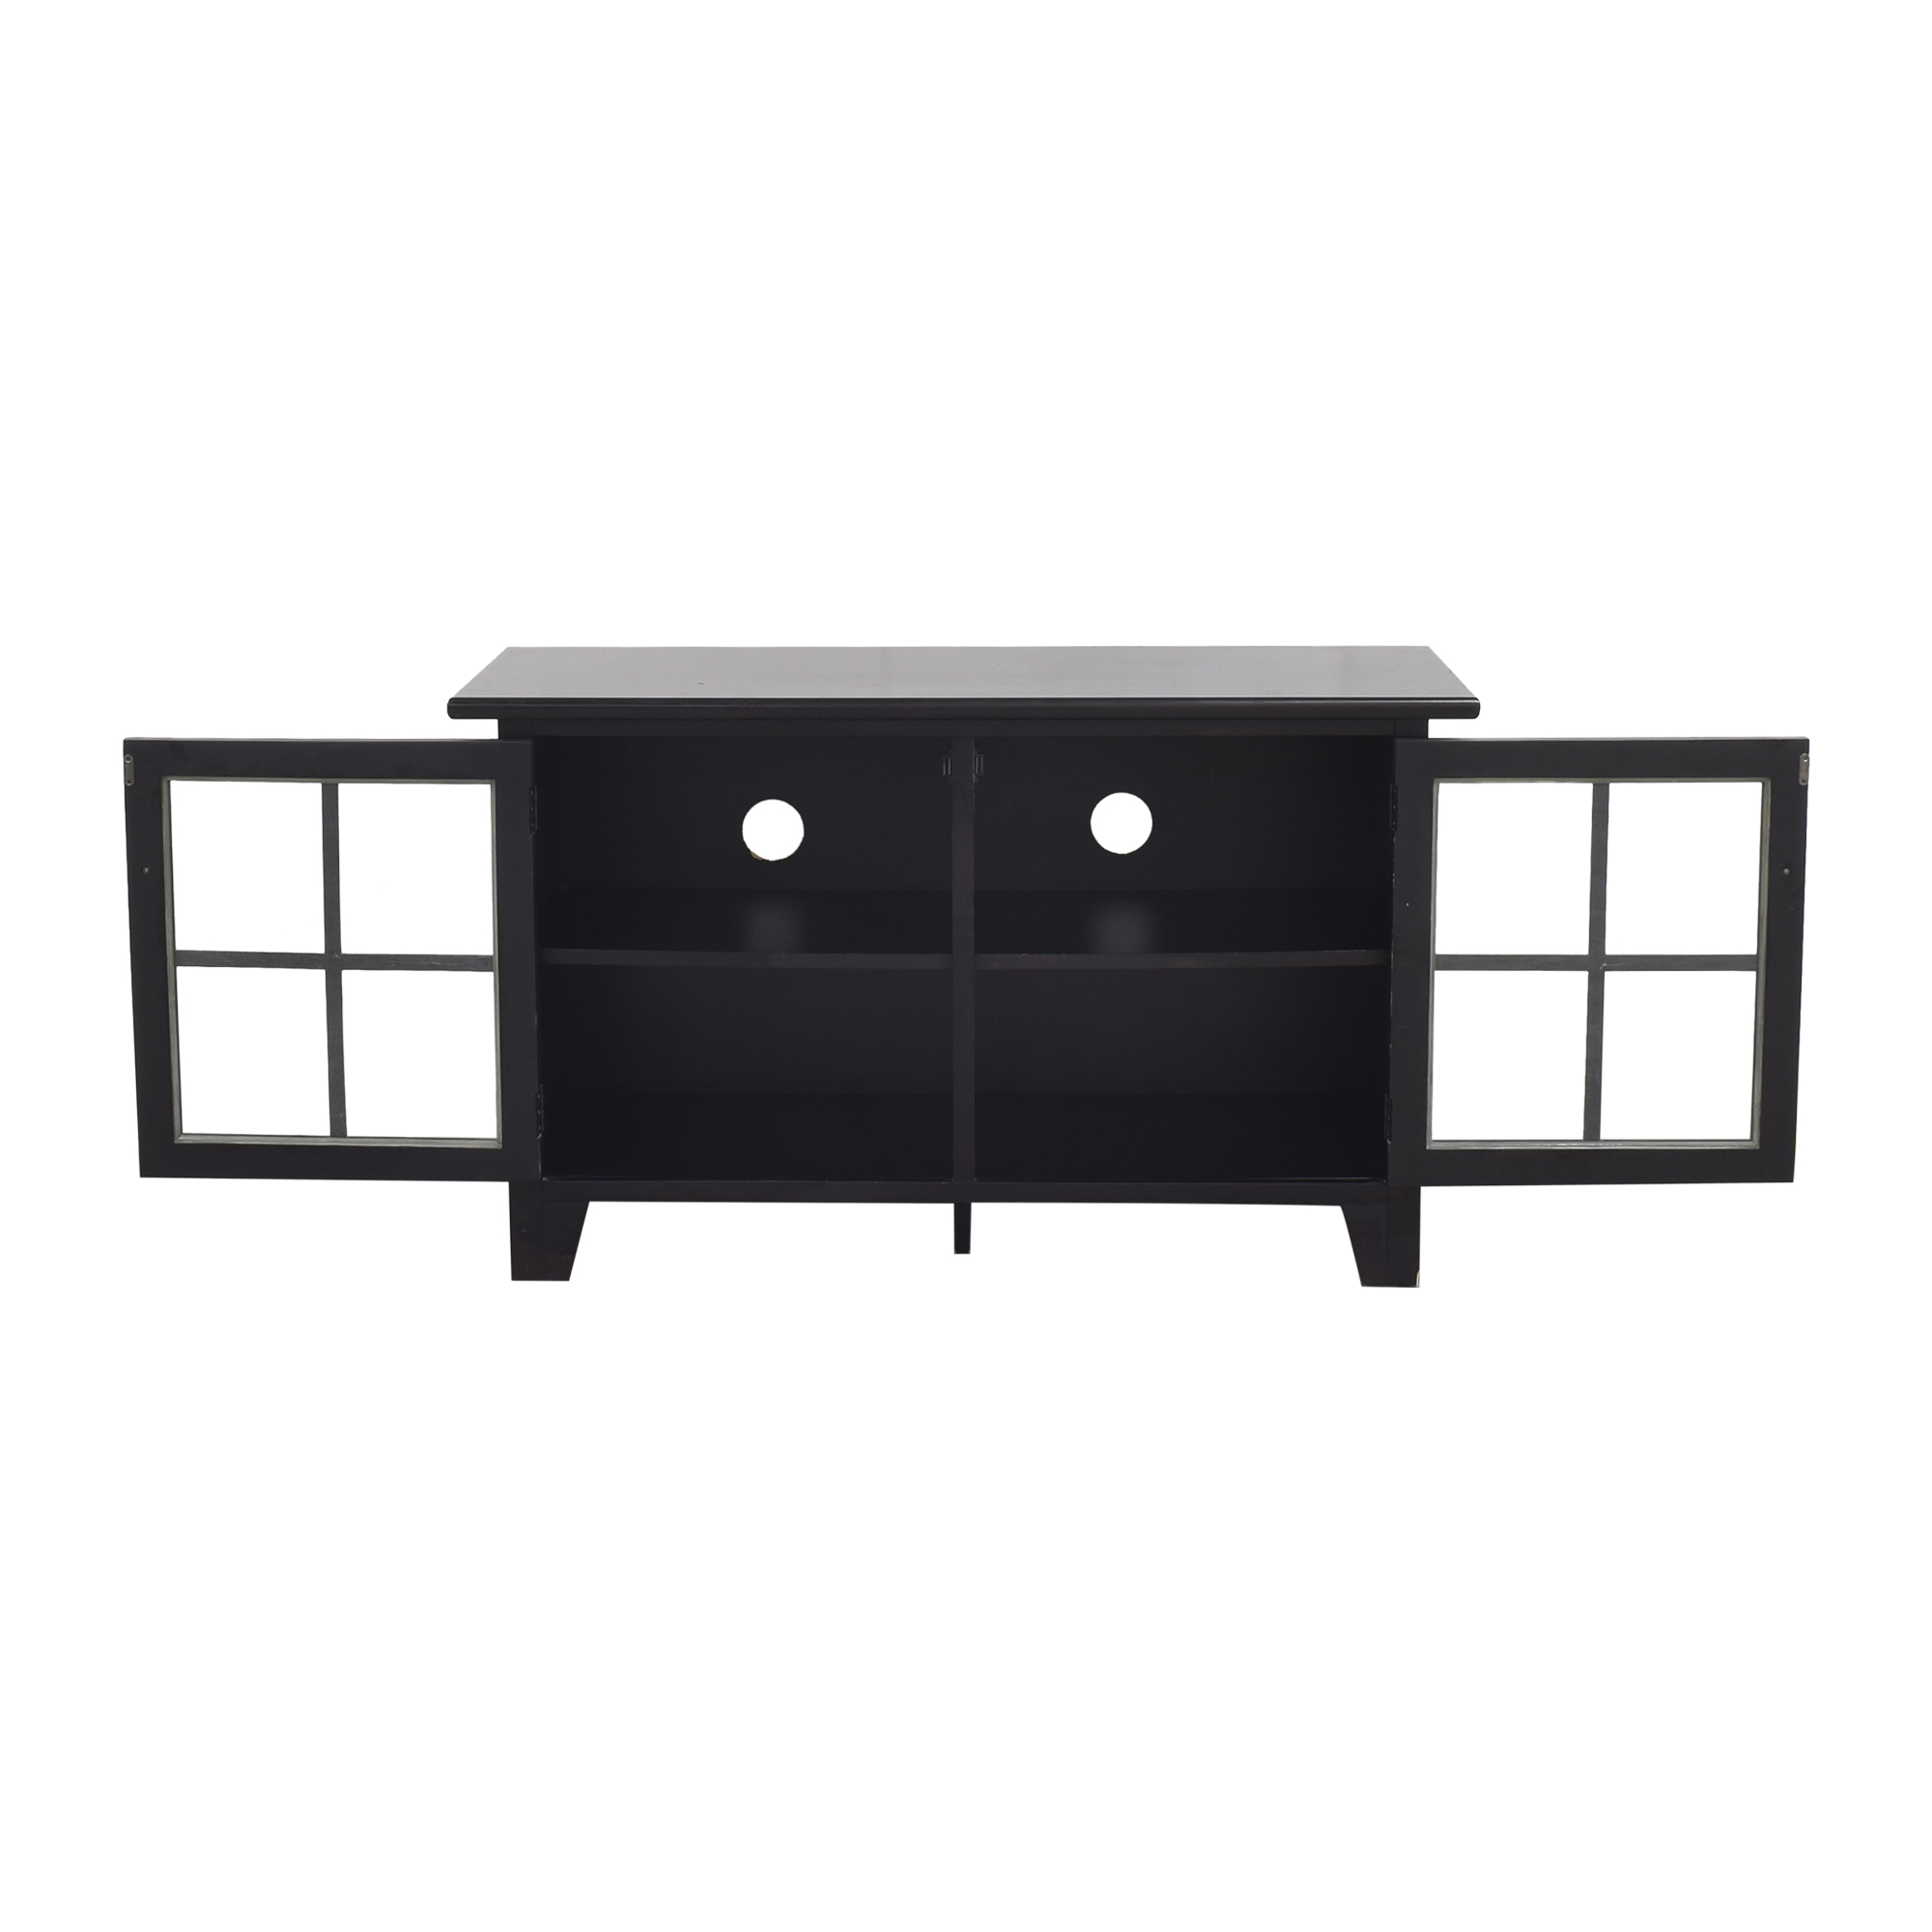 Pottery Barn Pottery Barn Two Door Media Cabinet coupon